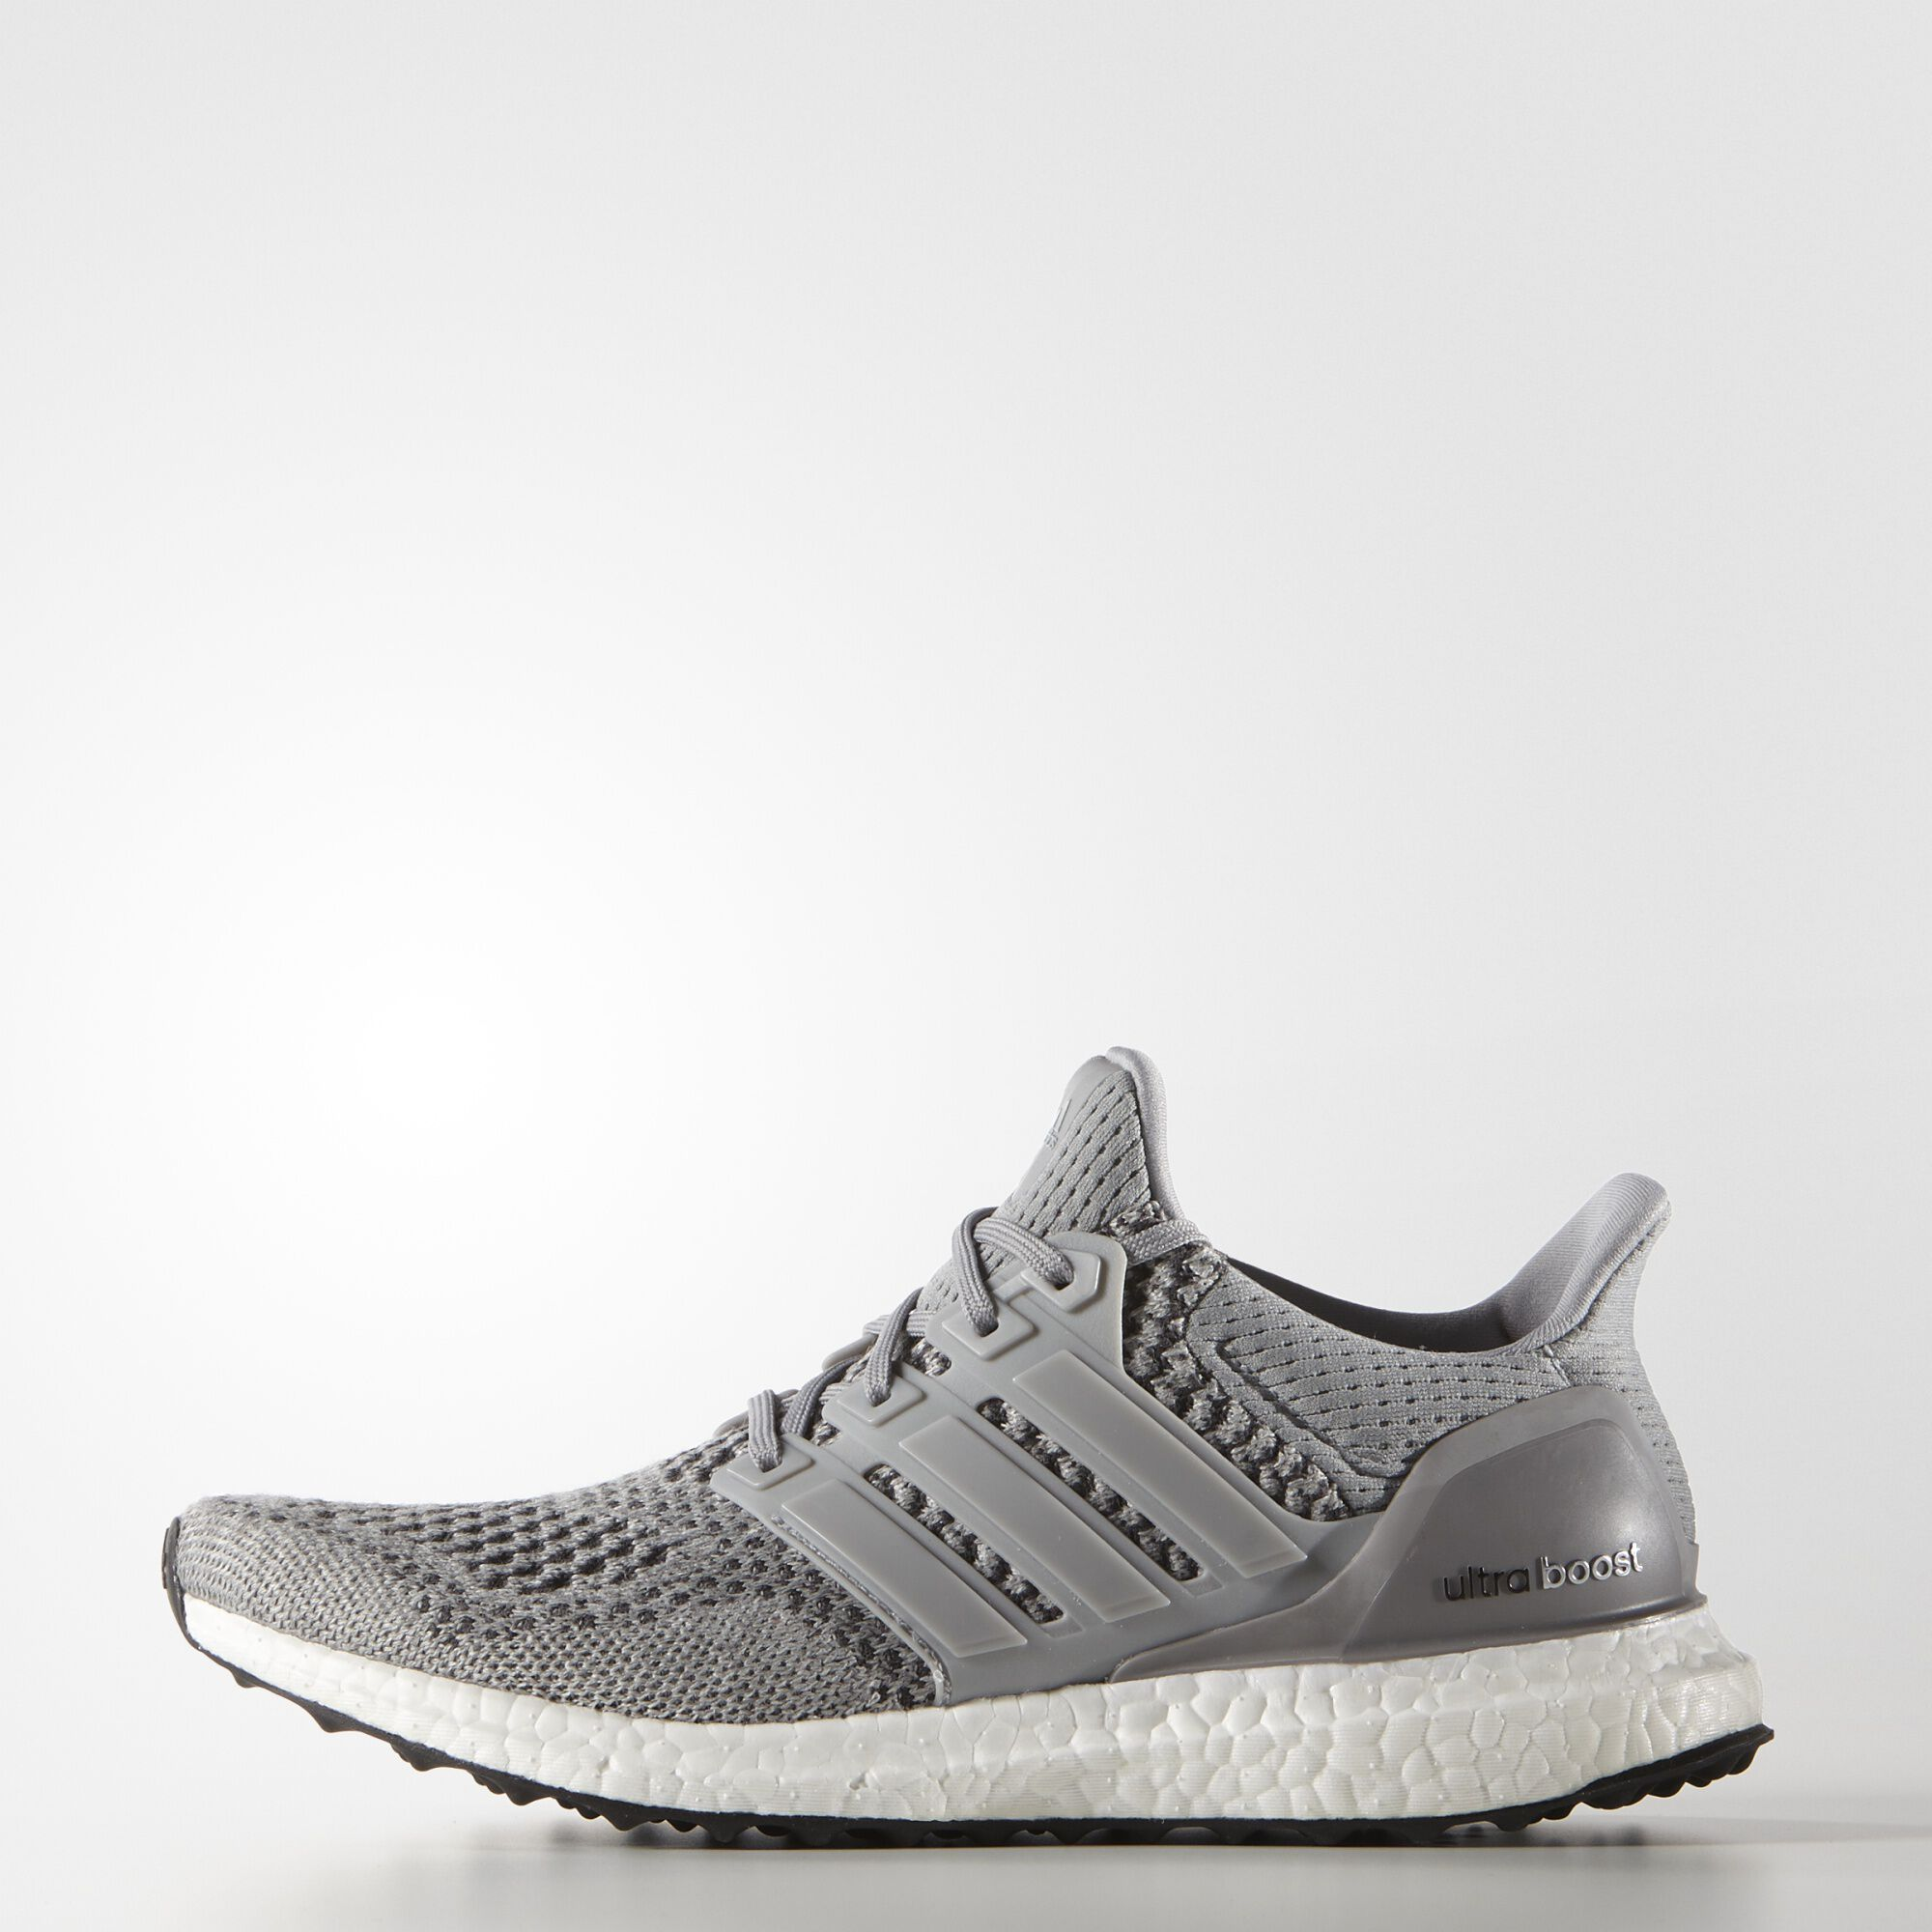 Adidas Ultra Boost White Black Bottom